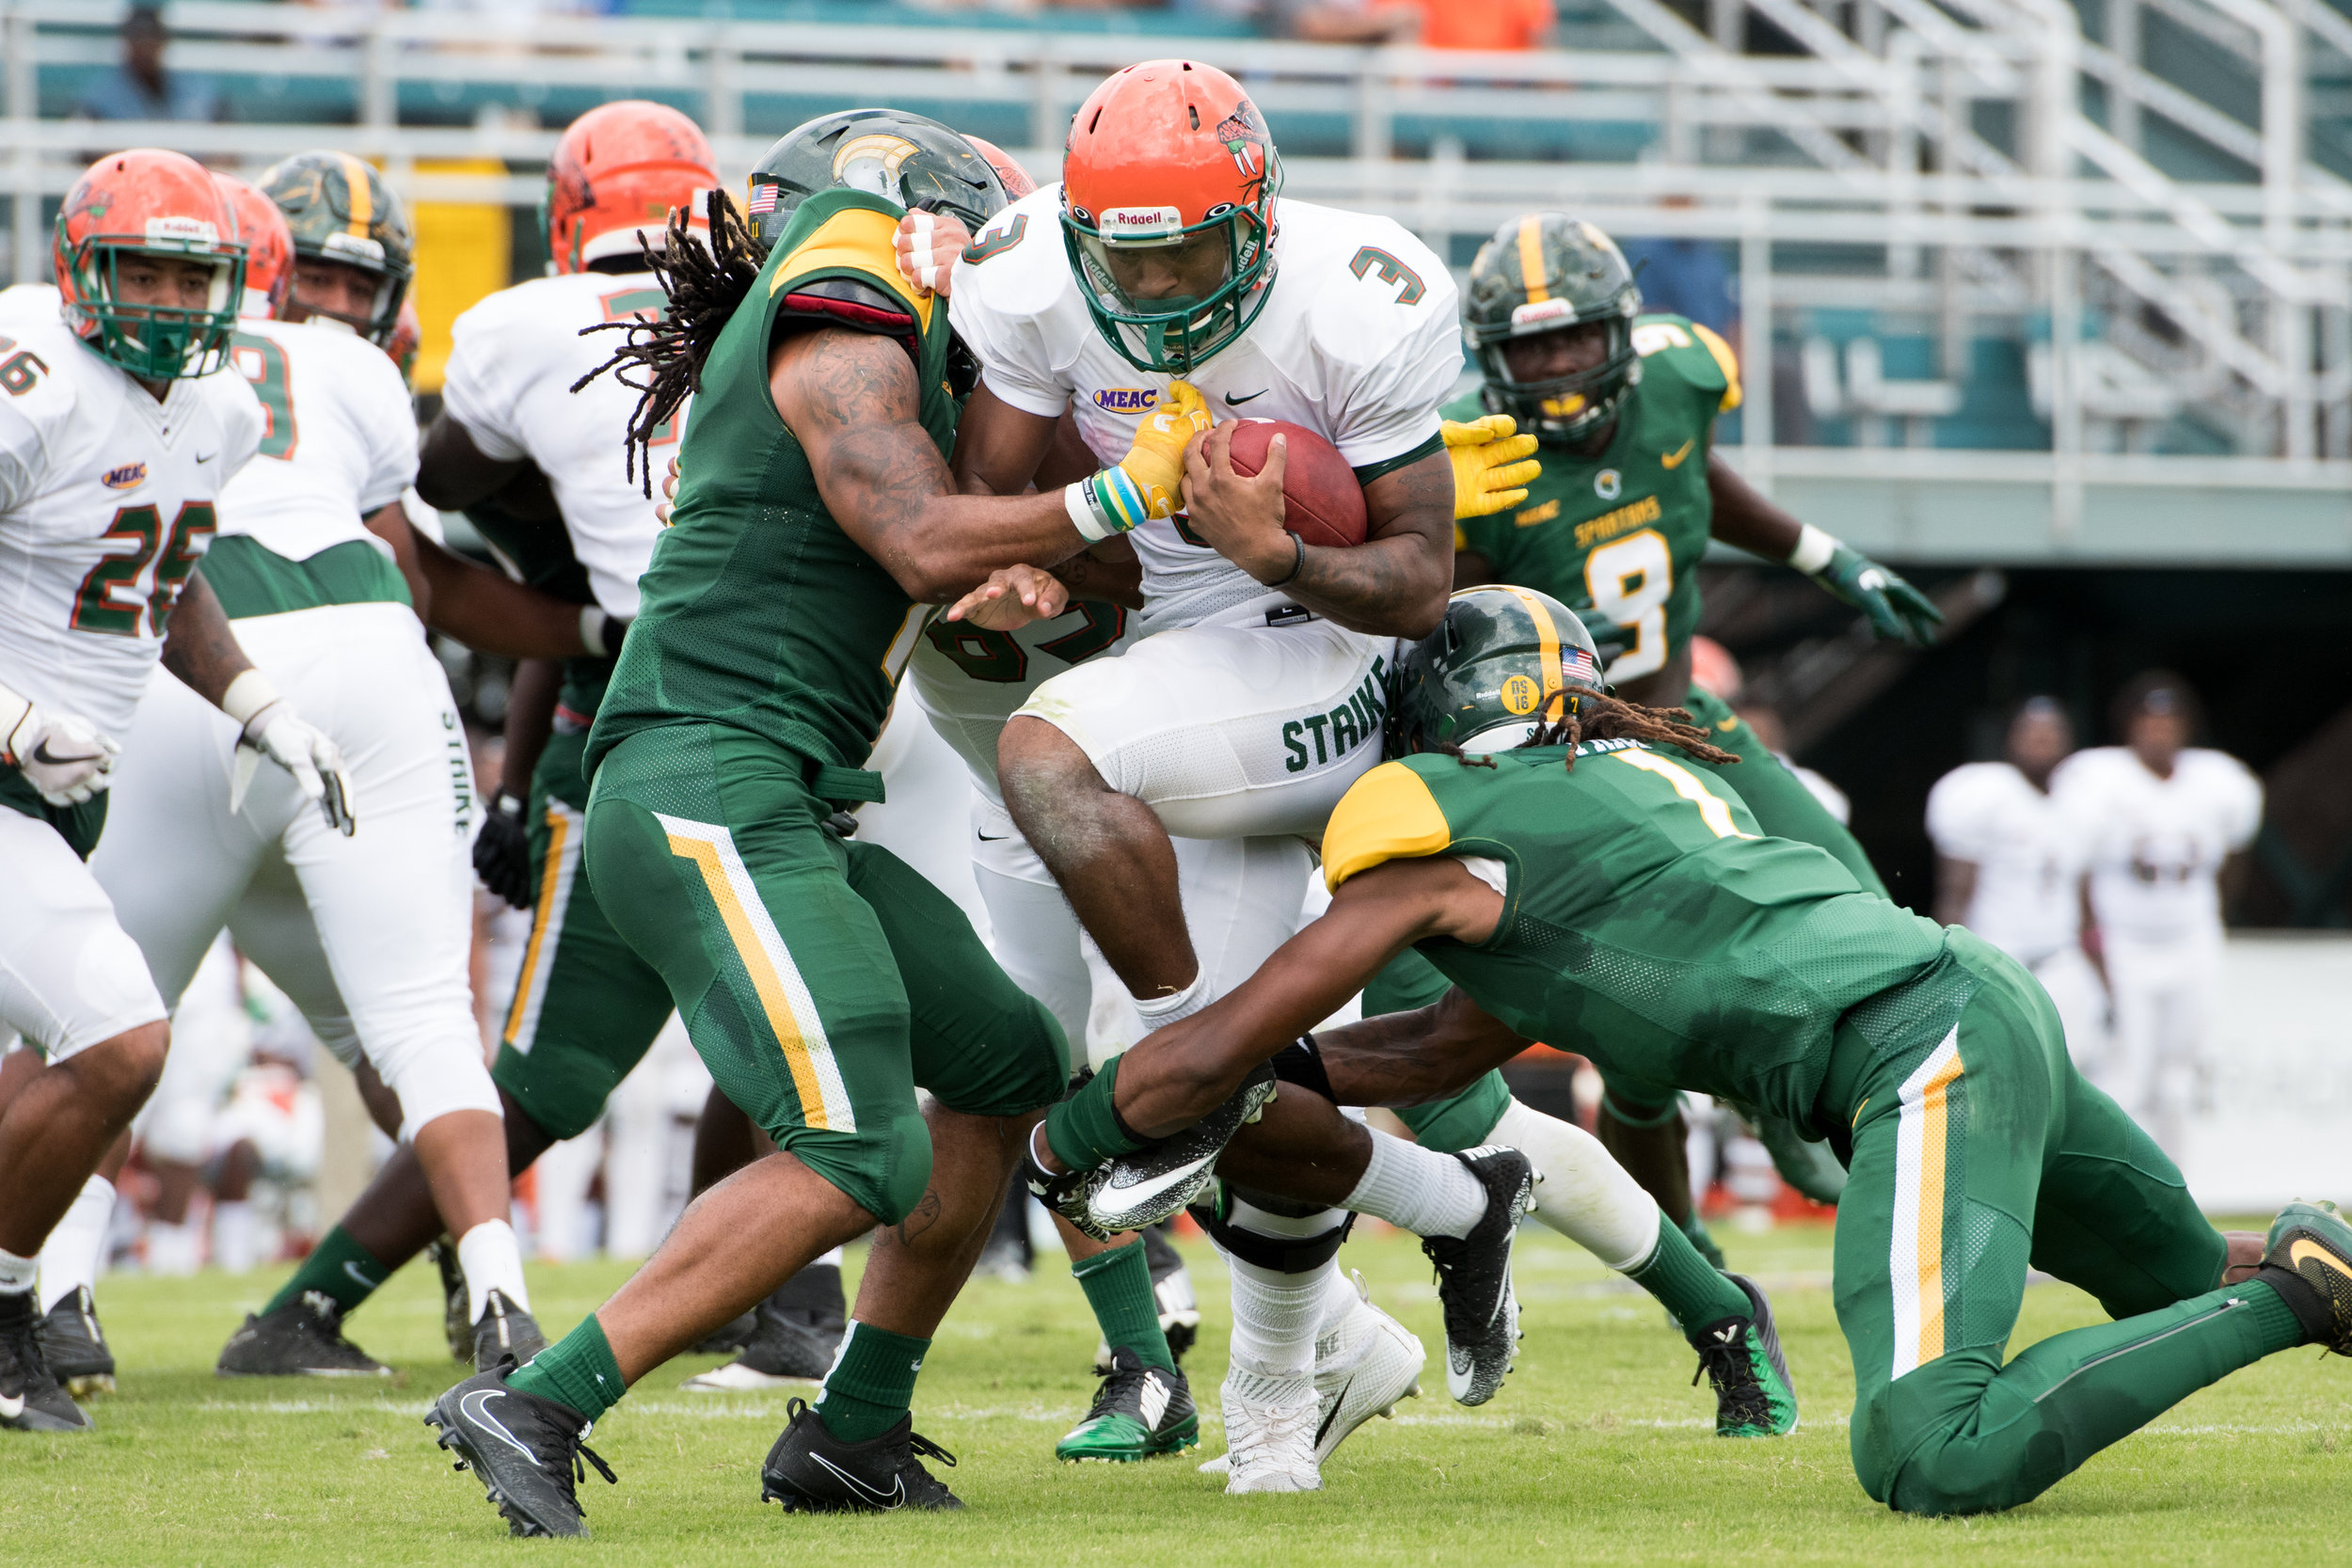 Florida A&M Rattlers running back Azende Rey (3) gets tackled by Norfolk State Spartans defensive back Bobby Price (1) during the Saturday, October 7th 2017 game held at Dick Price Stadium in Norfolk, Virginia. Score is tied 14-14 at the half.